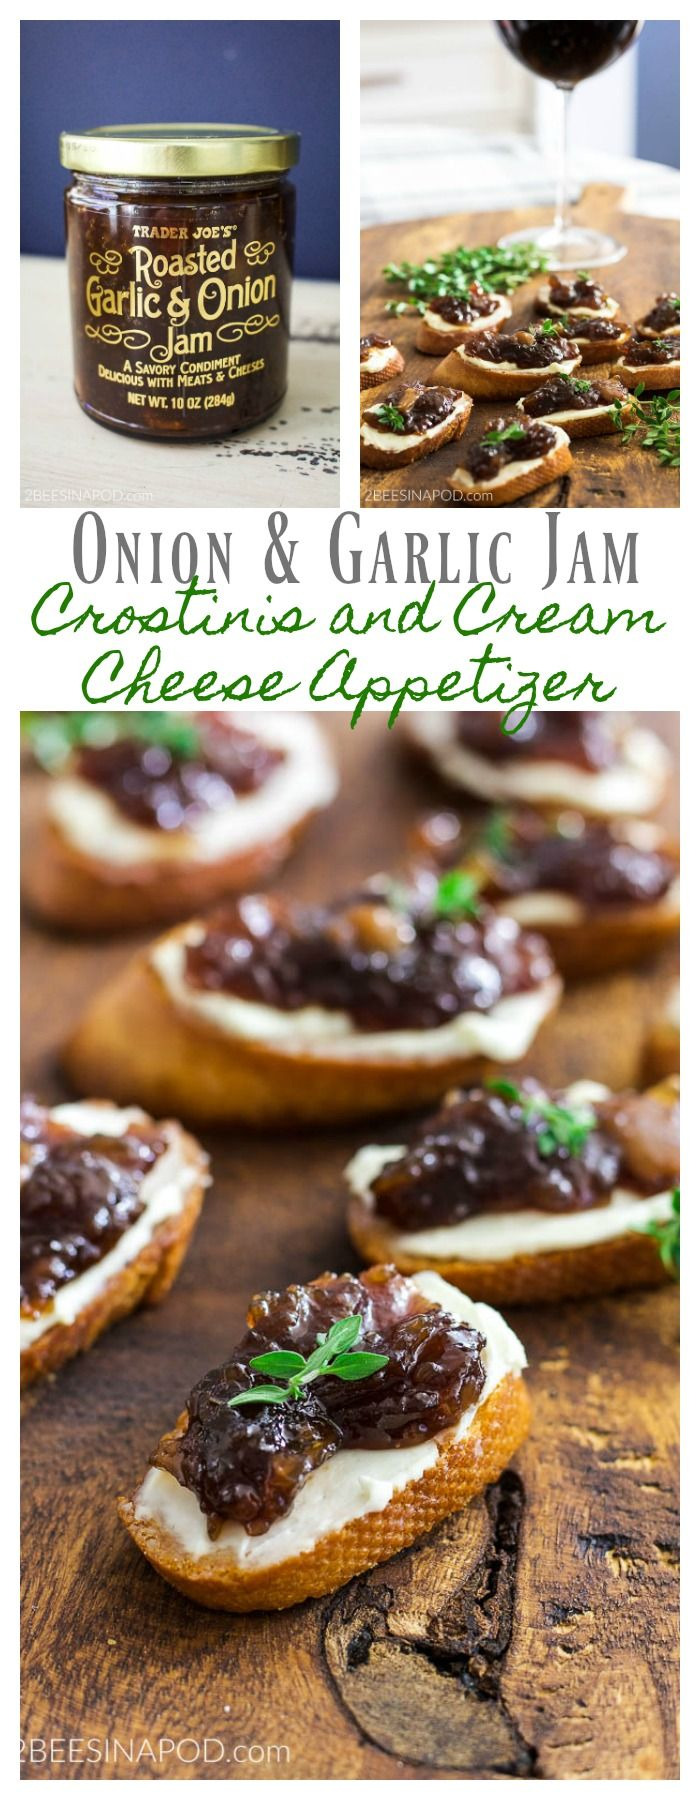 Easiest Onion & Garlic Jam Crostinis and Cream Cheese Appetizer. Party food. Holiday food. Christmas food. Christmas party food. Party appetizers. Easy appetizers. Trader Joe's food. Easy to make appetizers.